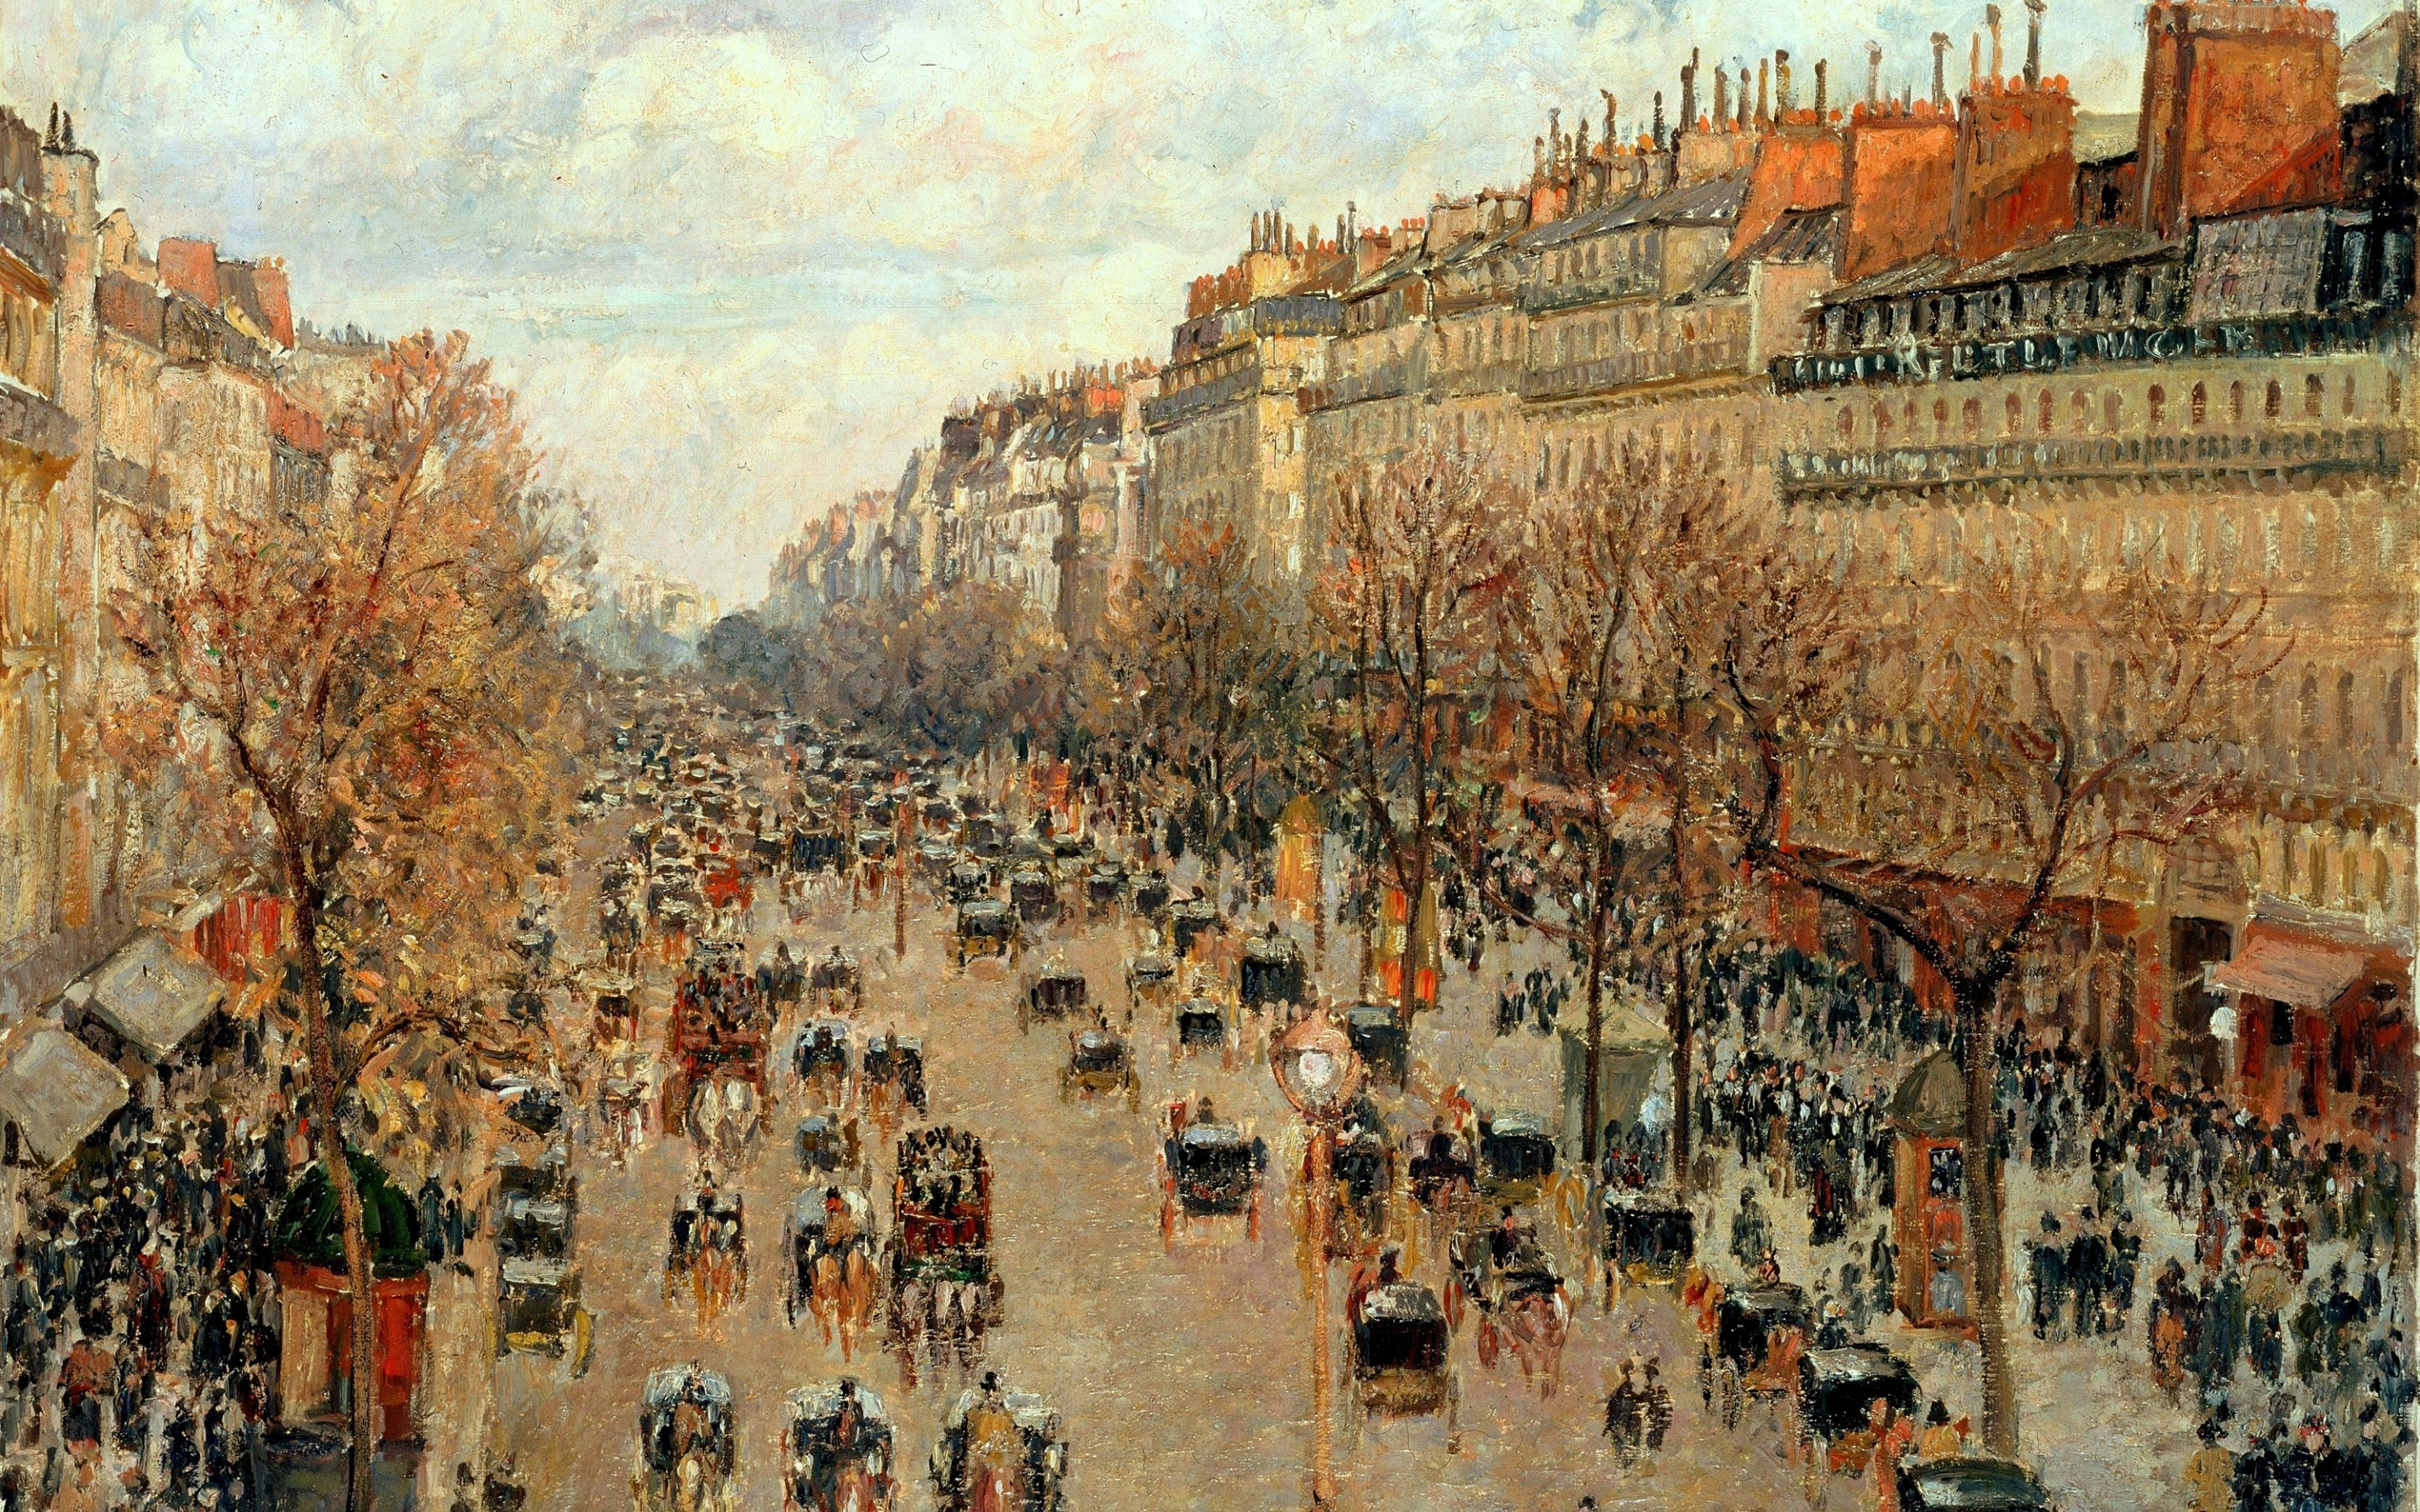 Res: 2880x1800, camille pissarro people crowds artwork painting architecture building paris  montmartre street trees urban horse wallpaper and background